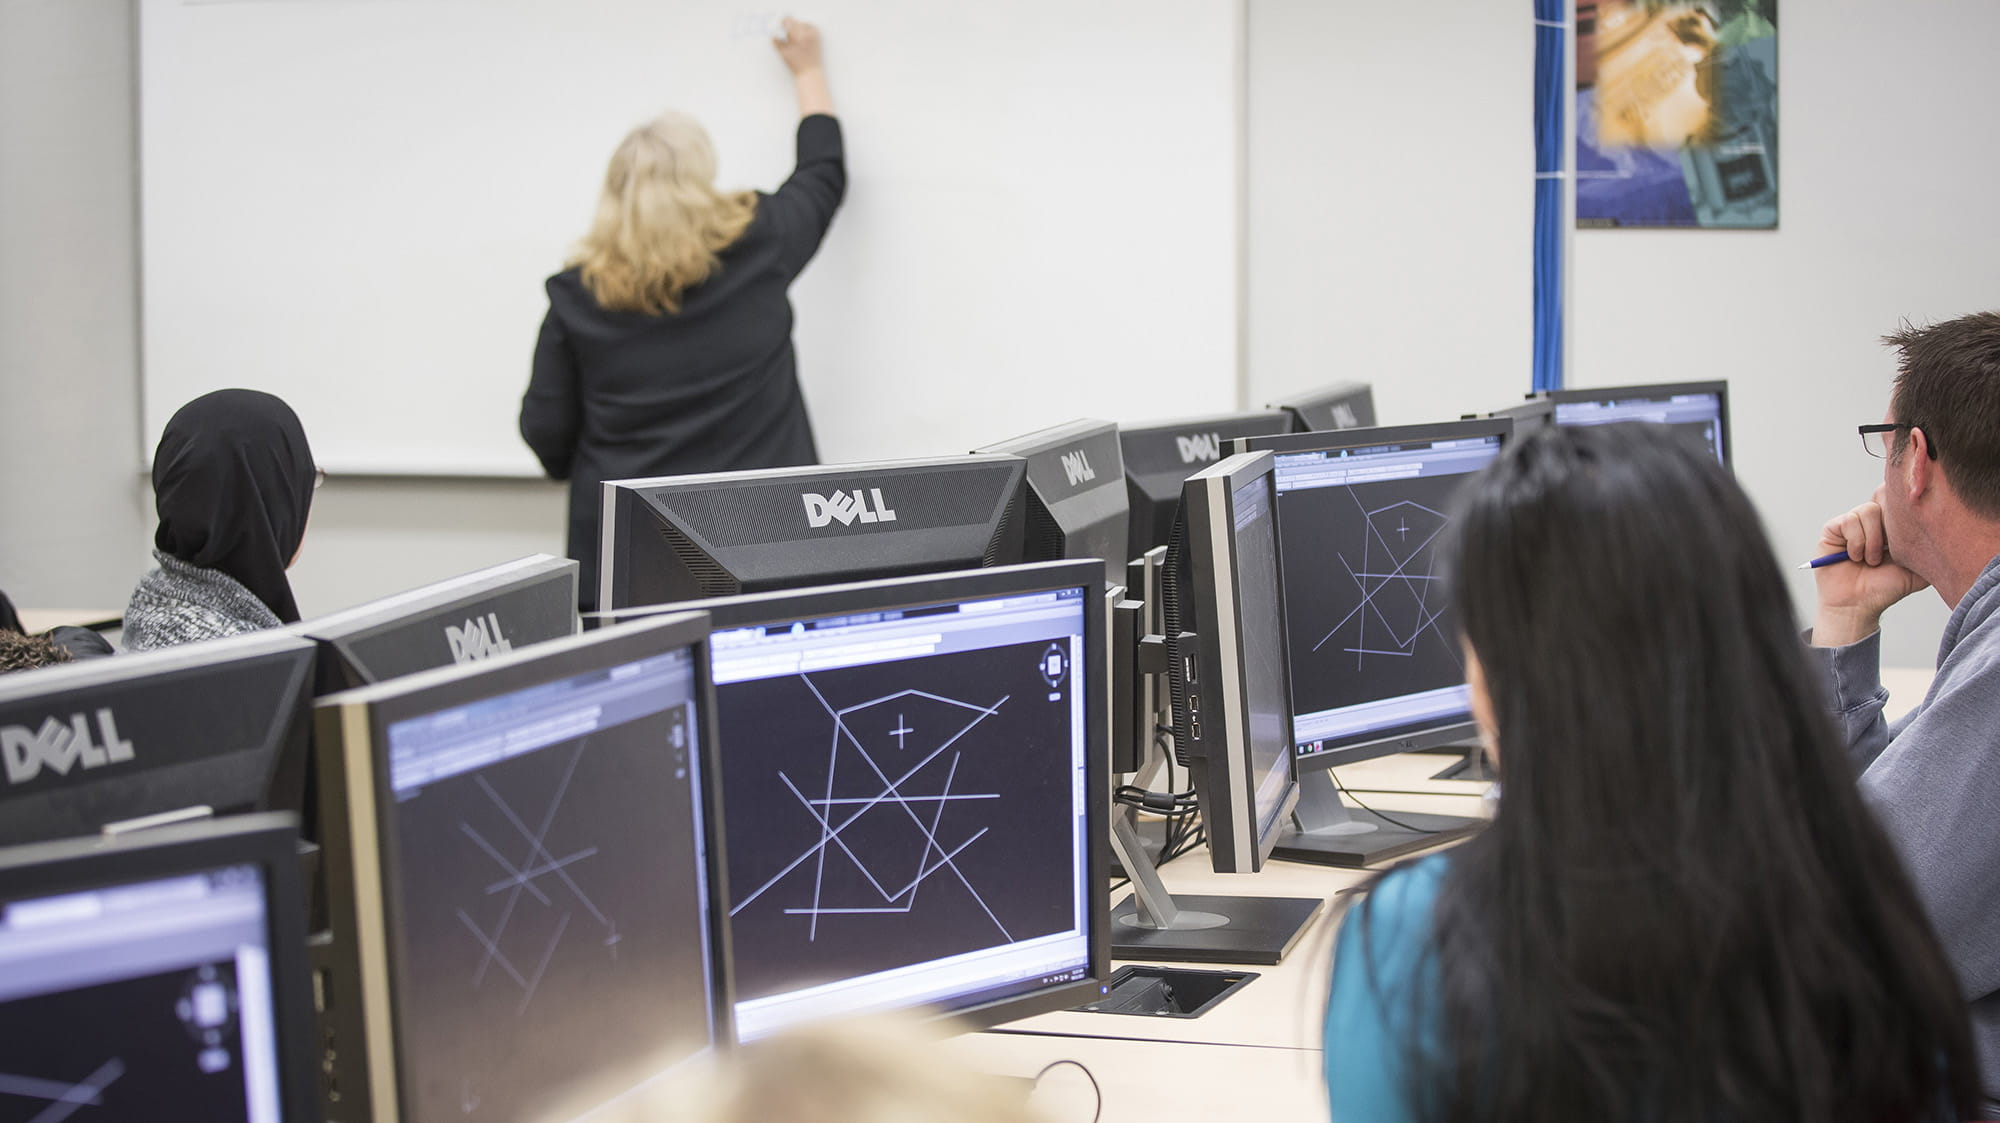 Students with computers in a CAD lab watching a teacher write on a white board